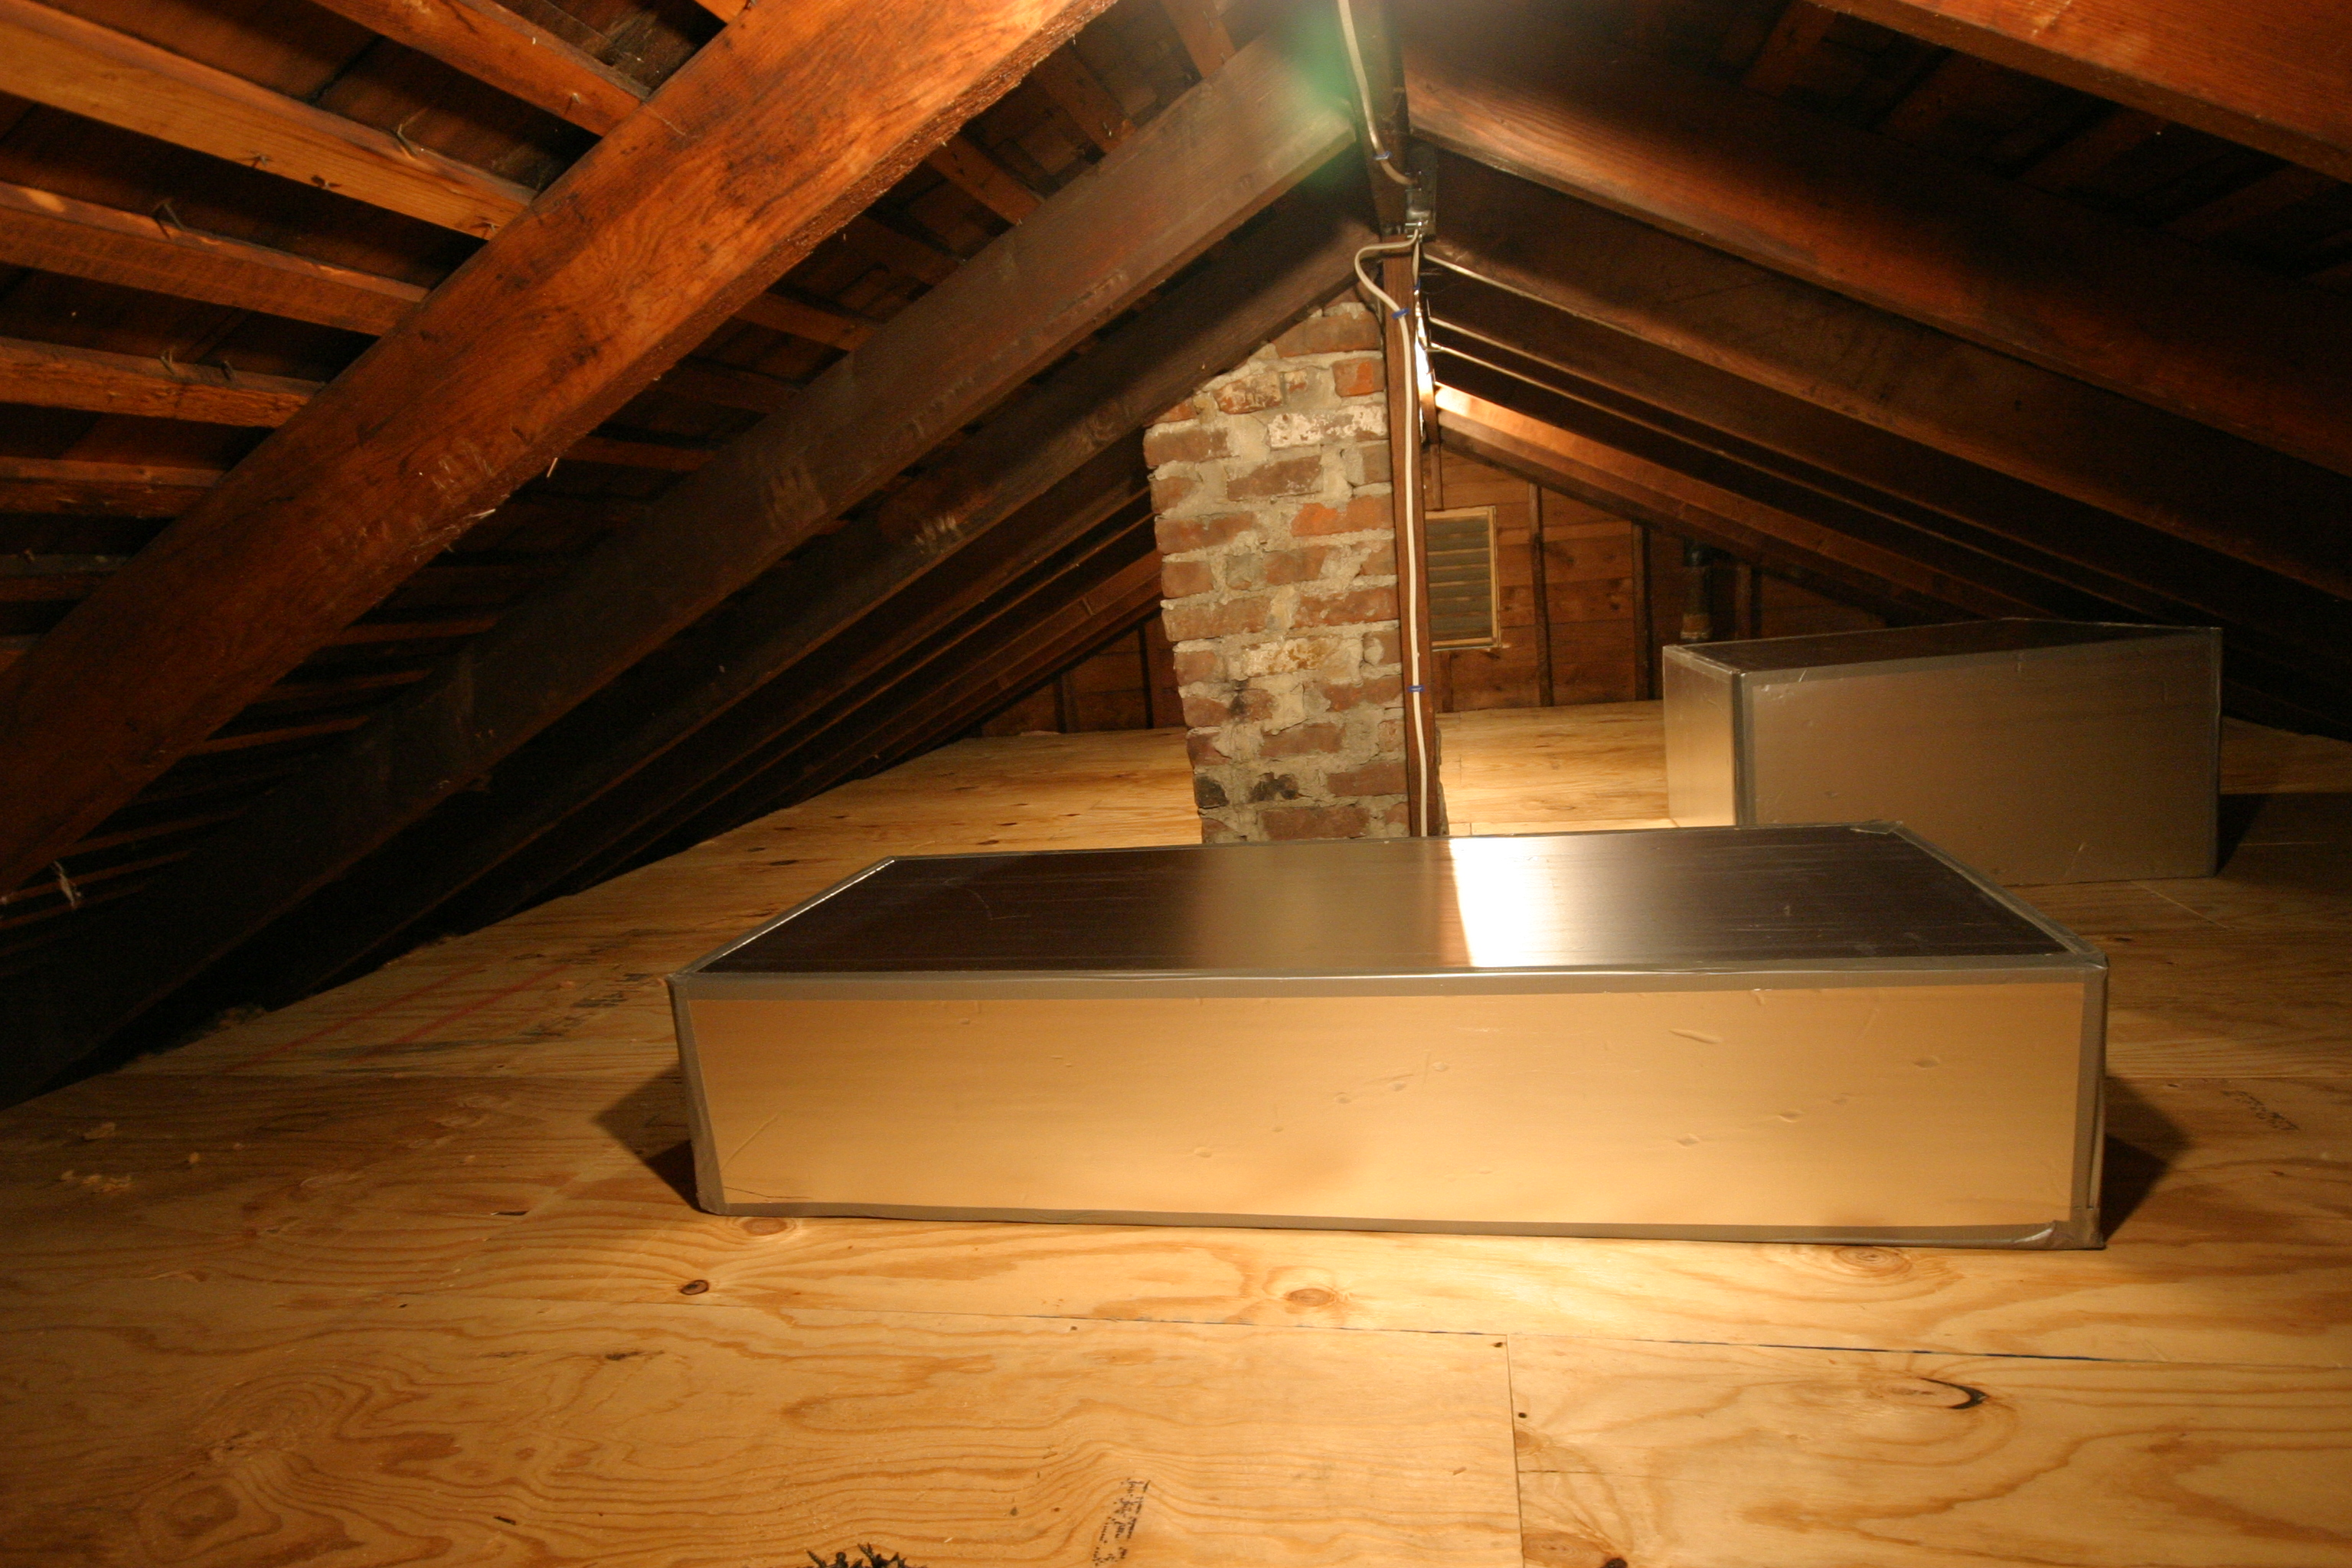 Attic Framing Insulation Plywood Jkranz Carpentry